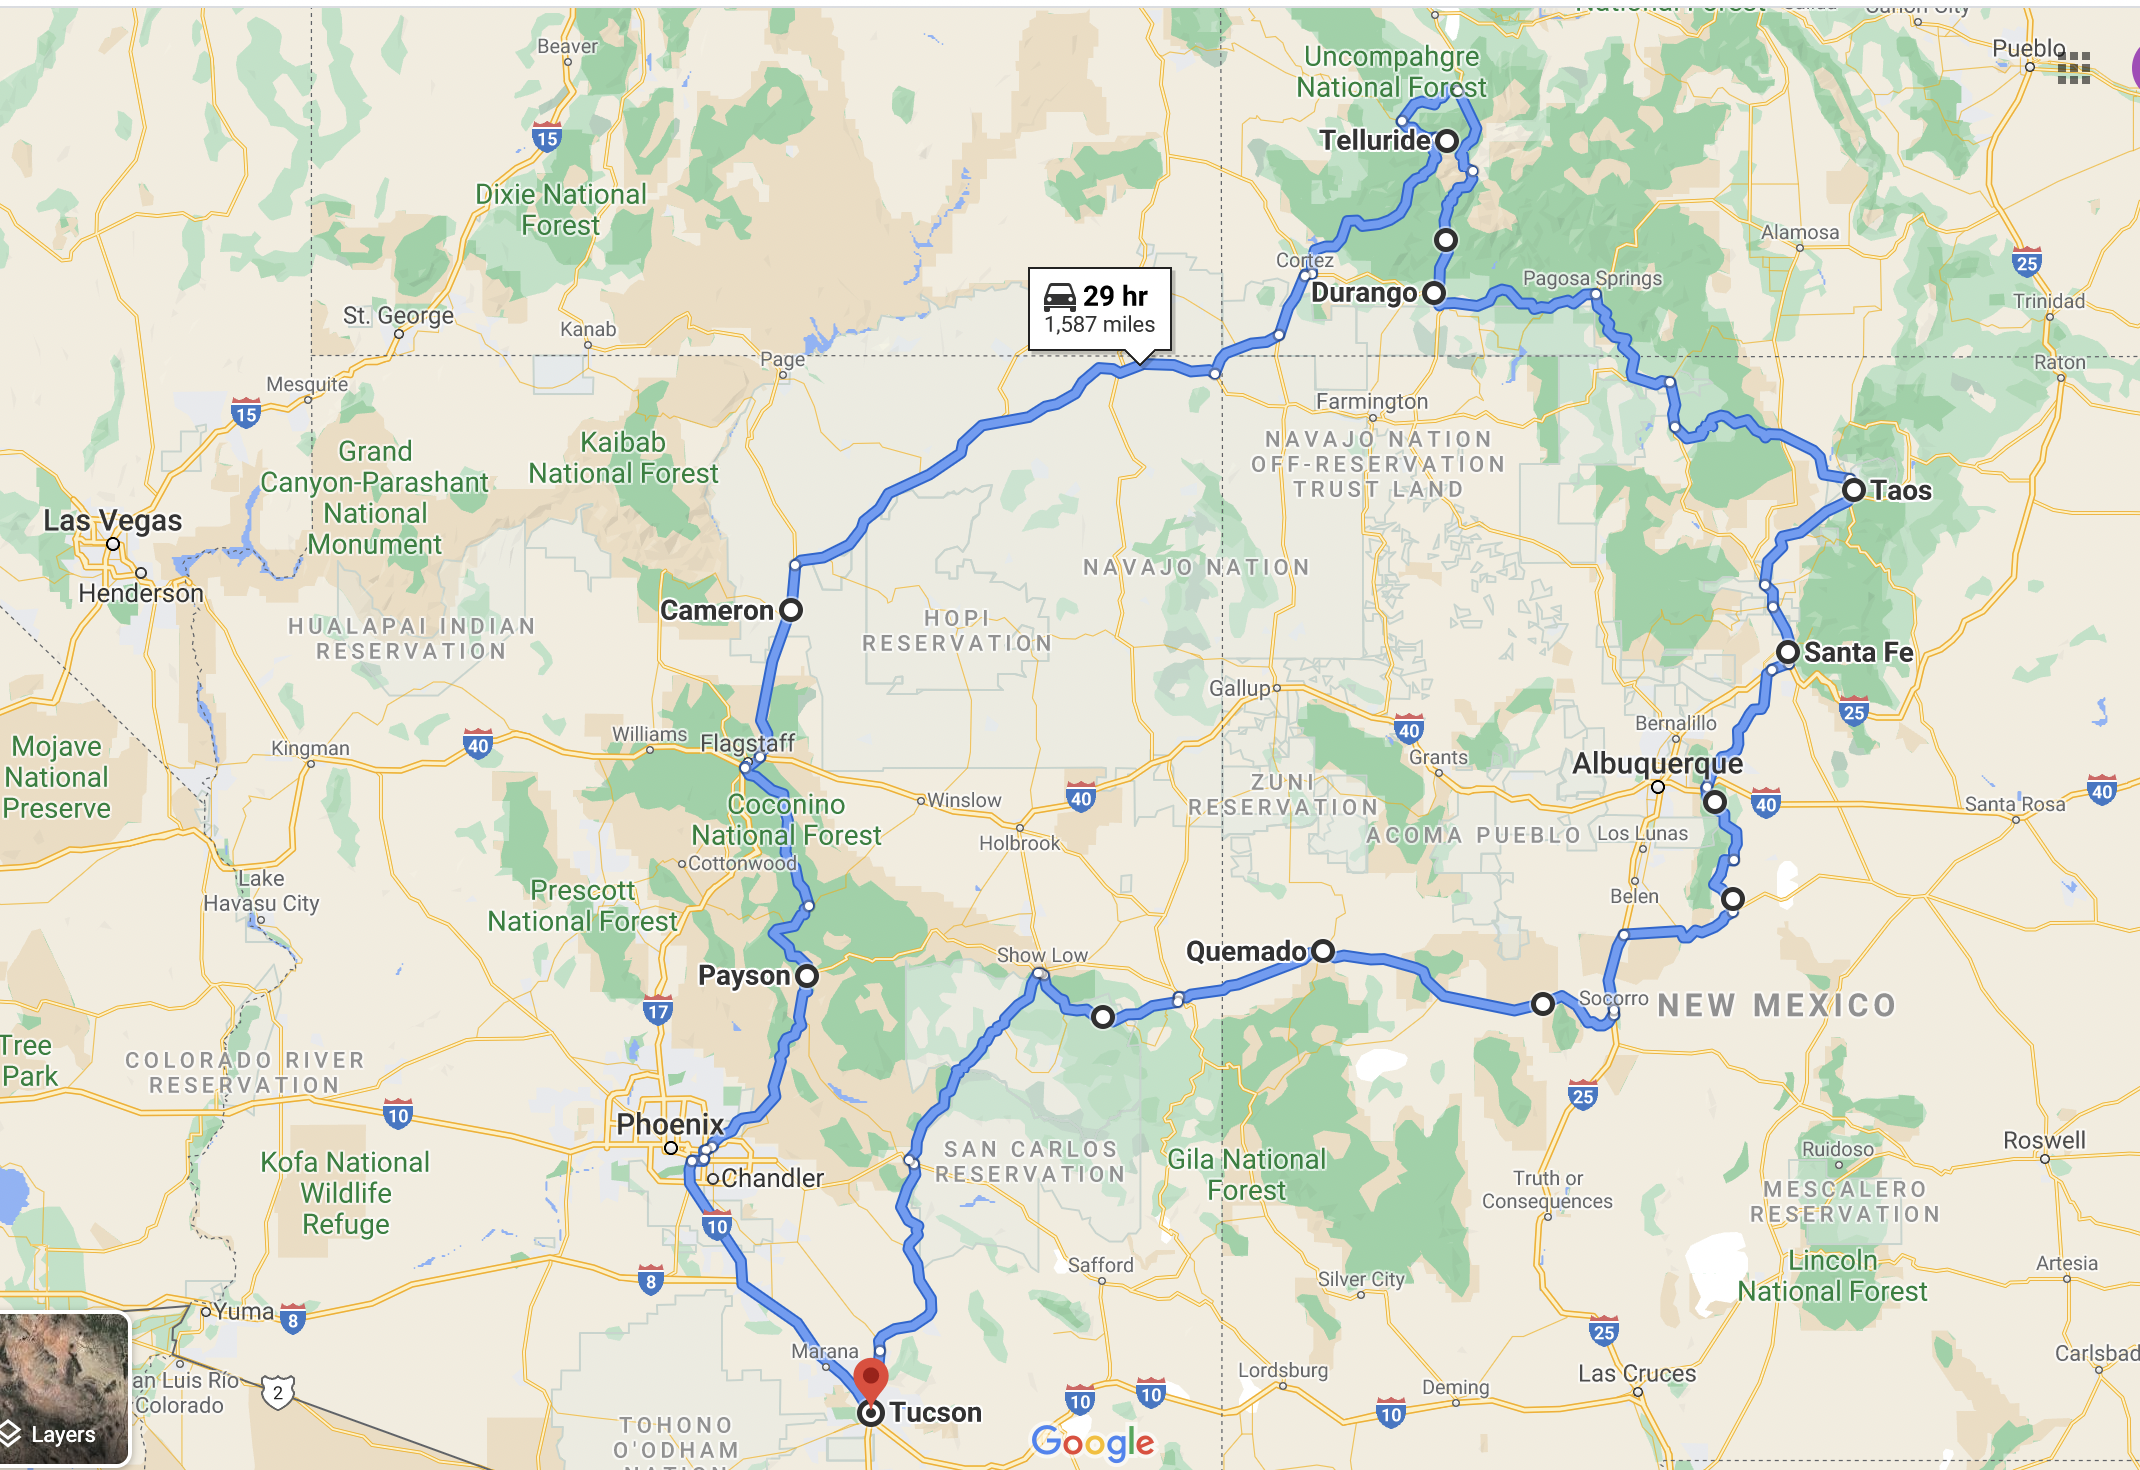 Full trip route.png